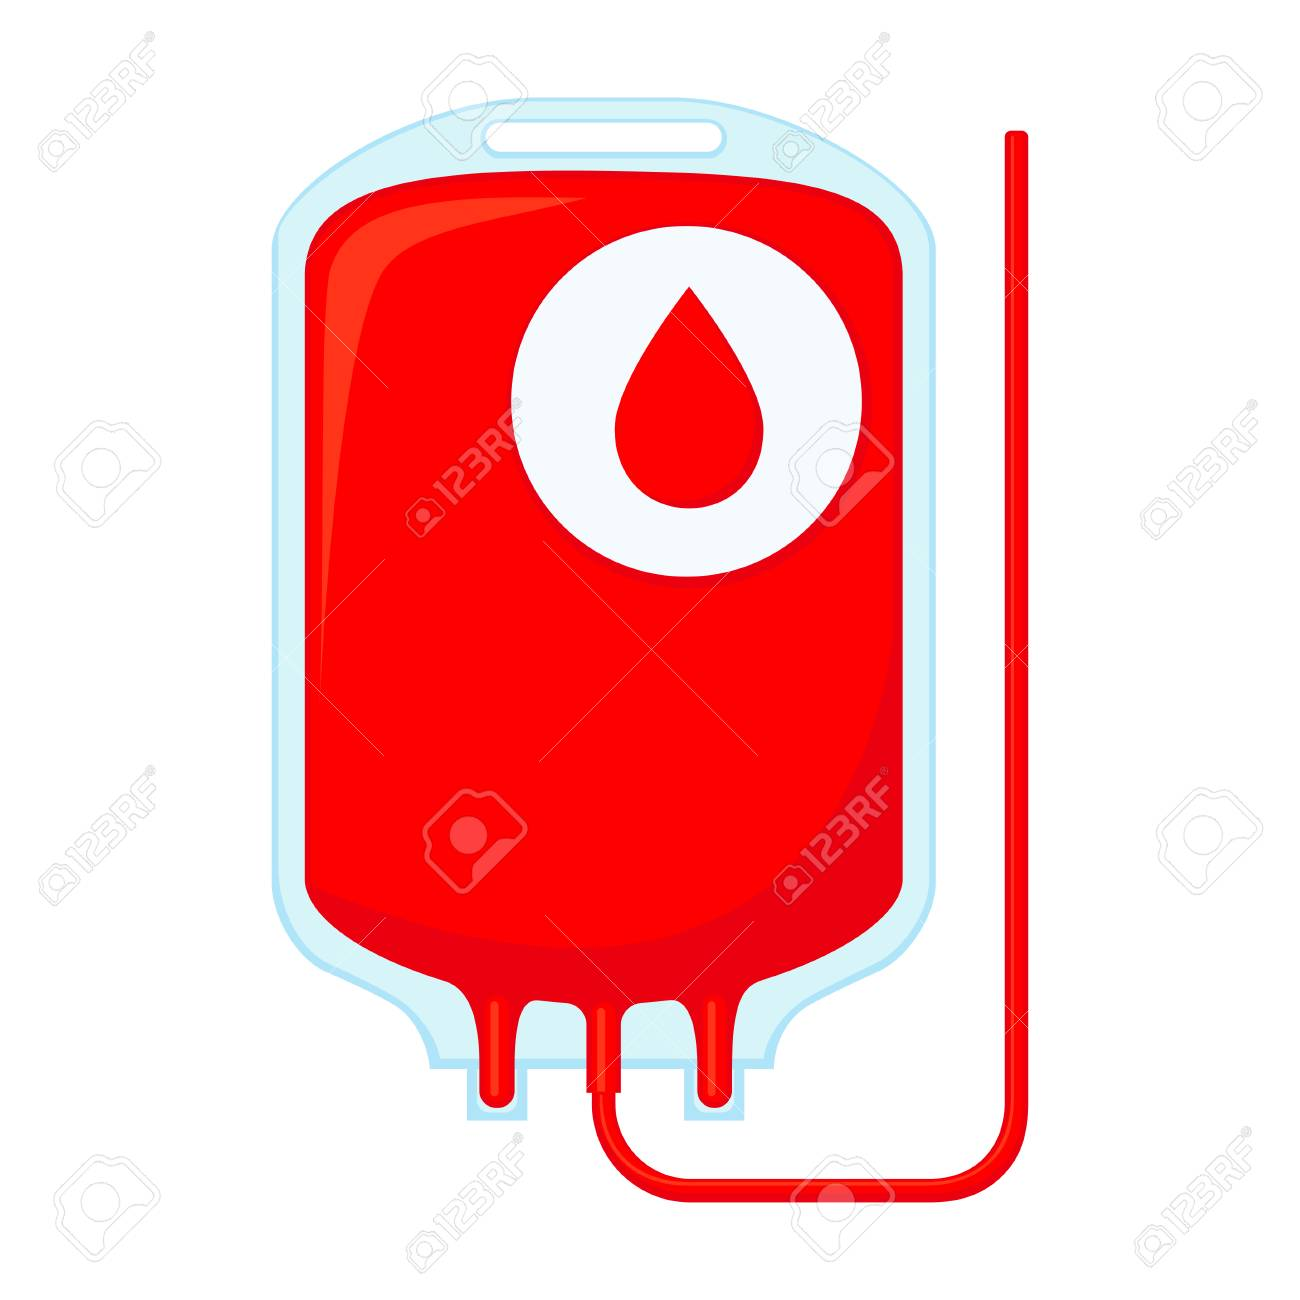 hight resolution of colorful cartoon blood donation bag isolated on white background healthcare themed vector illustration for icon